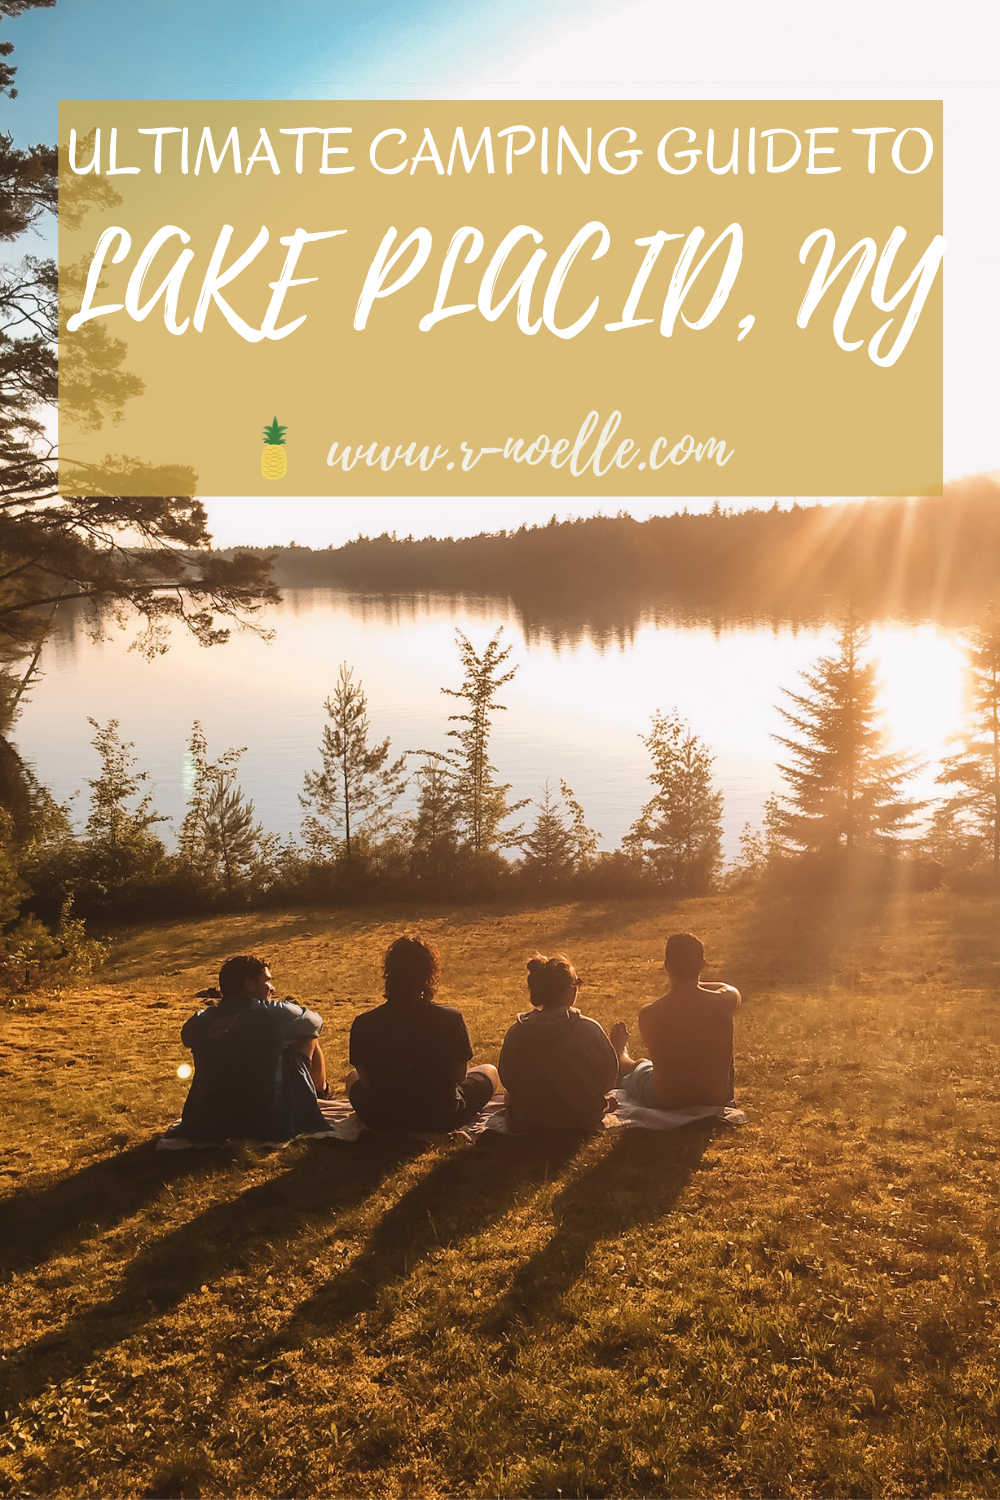 Lake Placid, New York is known for hosting the 1984 Olympics. Many people still flock there year round for hiking, kayaking, swimming, and explore the high peak mountain ranges. #hiking #hikinghighpeaks #thingstodoinlakeplacid #campinginadirondacks | Things to do in Lake Placid | Camping in Adirondacks